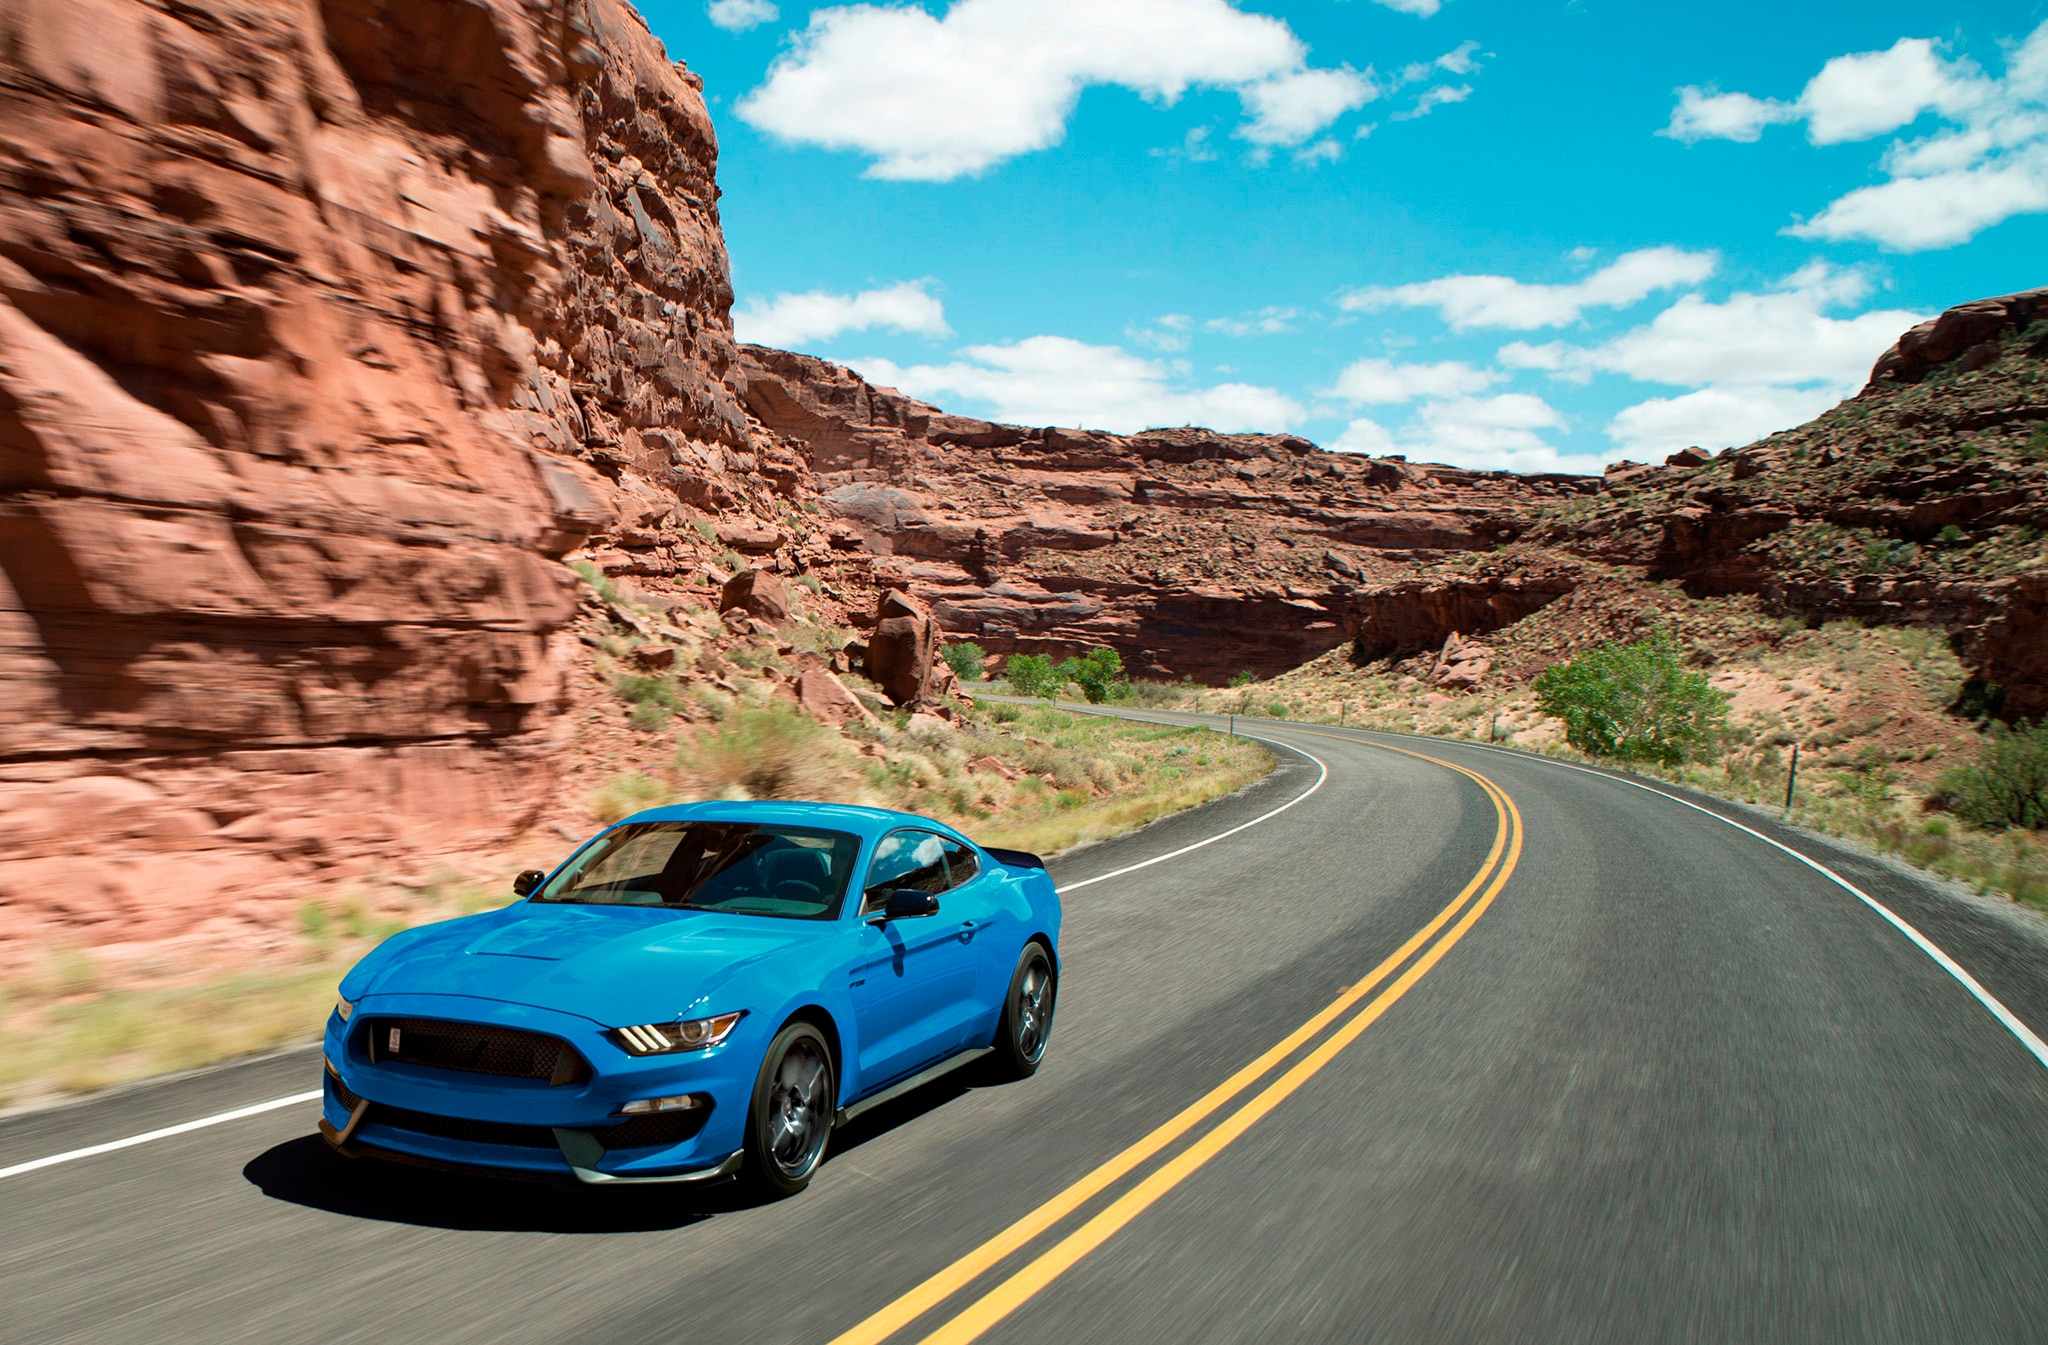 Shelby Mustang GT350 Production Extended To 2018 Model Year Goes On Sale In The Summer Of 2017